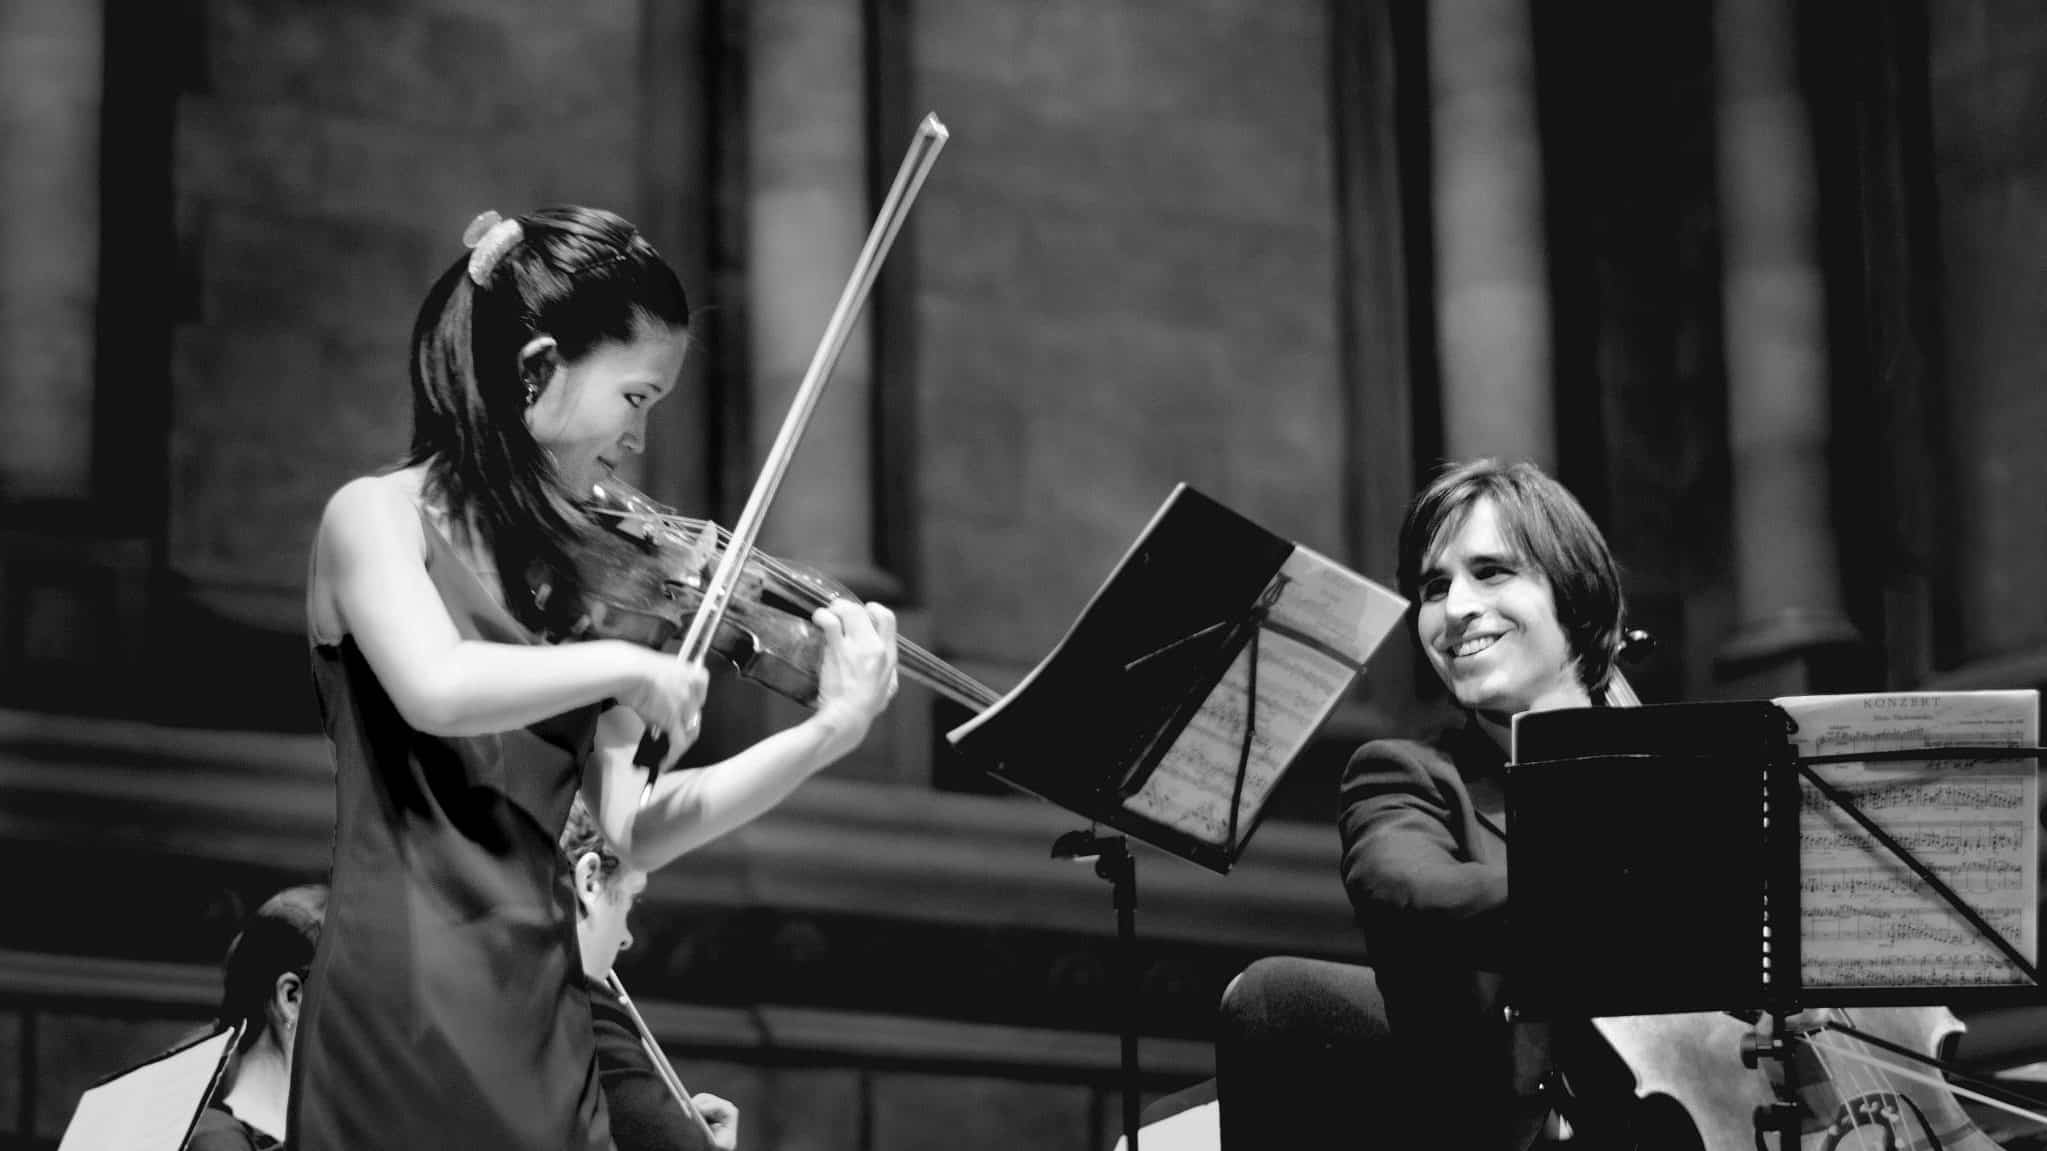 Duo - B performance at First Church